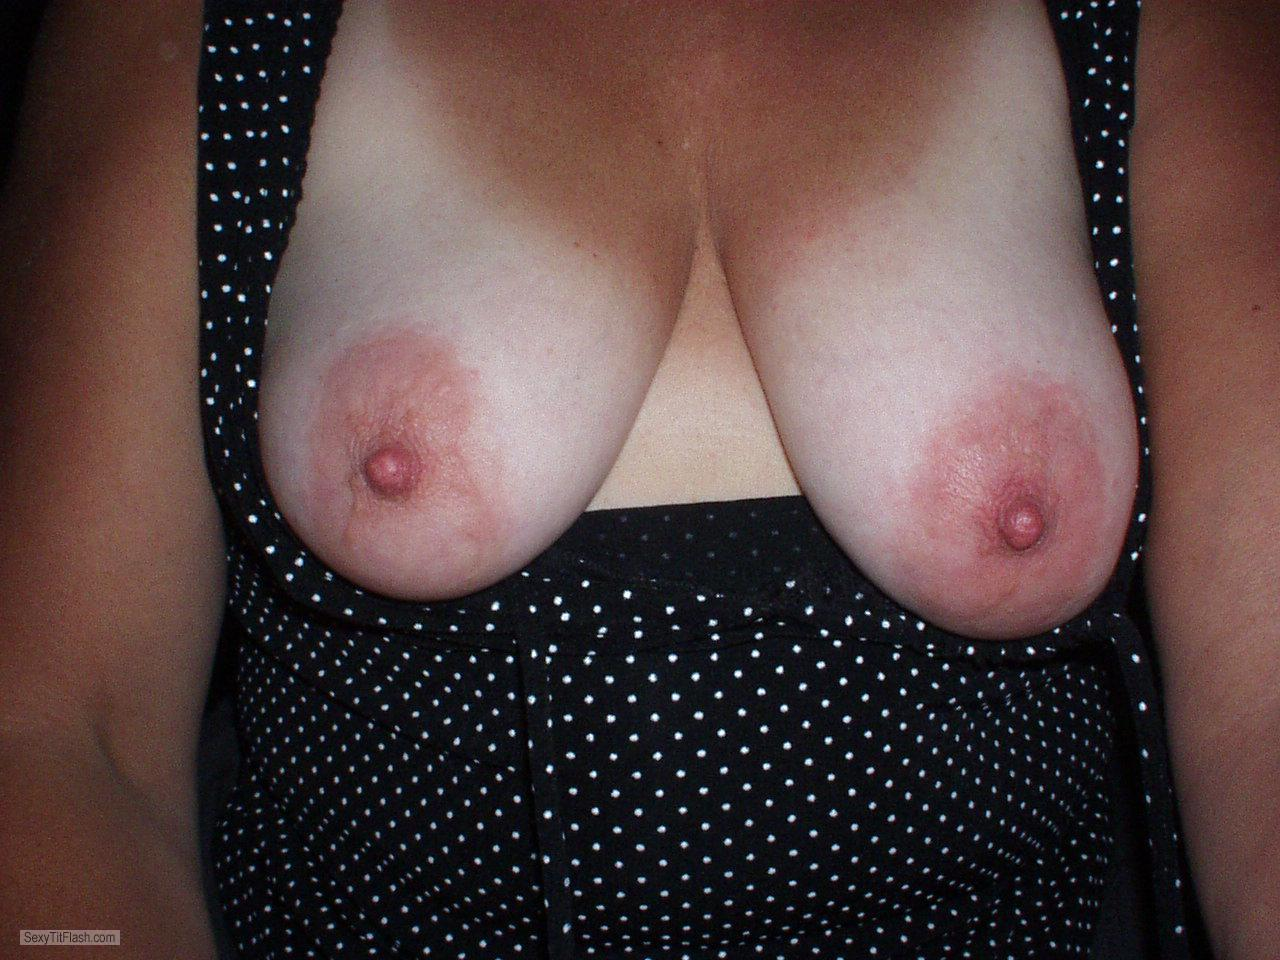 Tit Flash: Wife's Big Tits With Strong Tanlines - Pam69 from United States